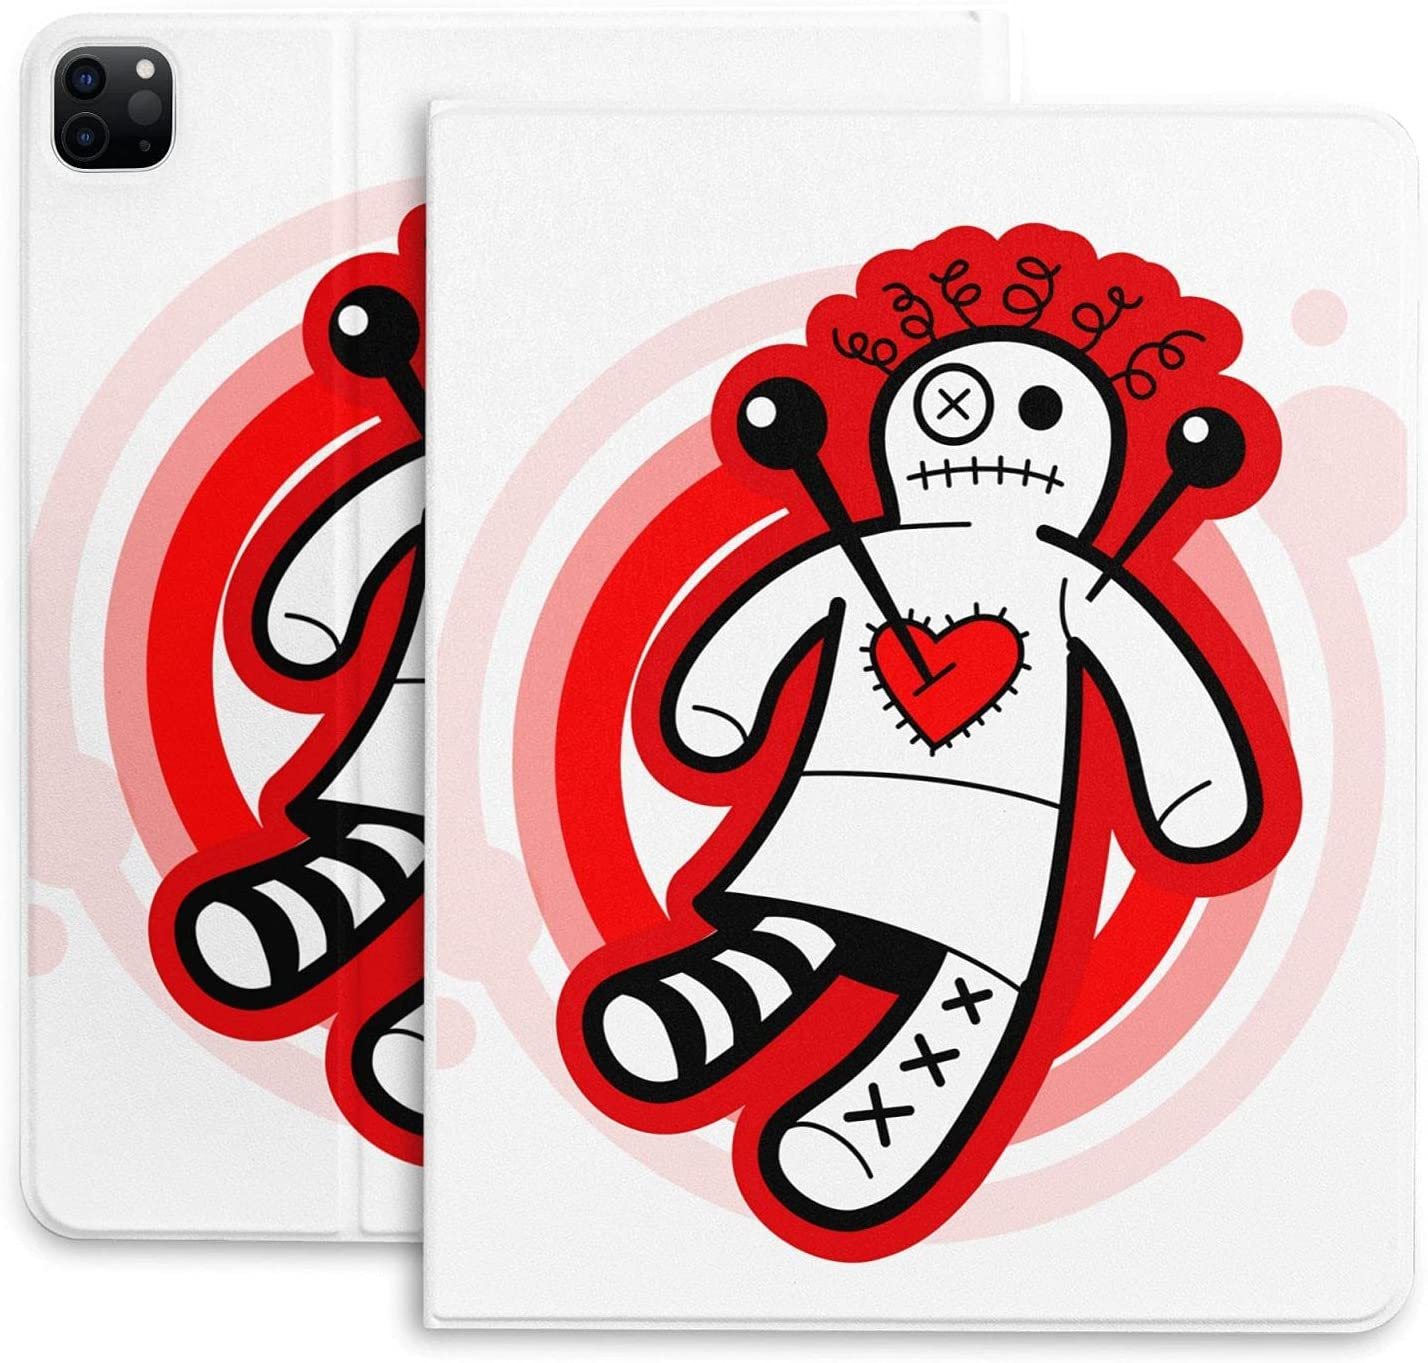 Voodoo Doll Soft Japan's largest assortment TPU Back Free Shipping New w Cover Shell Premium Protective